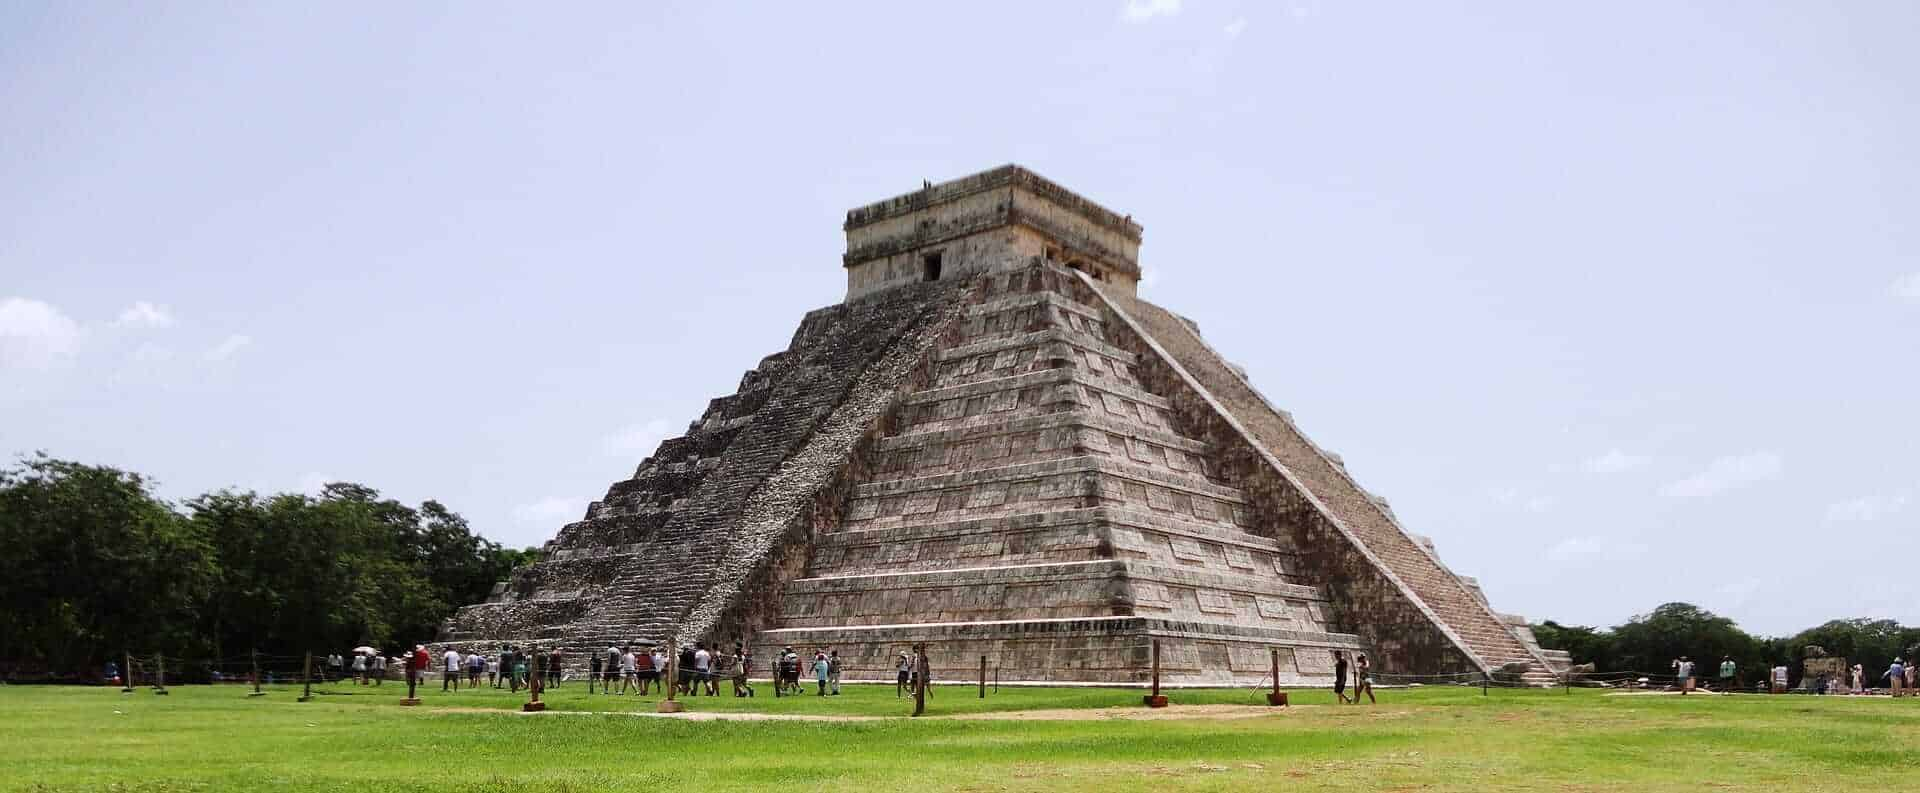 Mayan-pyramids-Cancun best places to travel in January